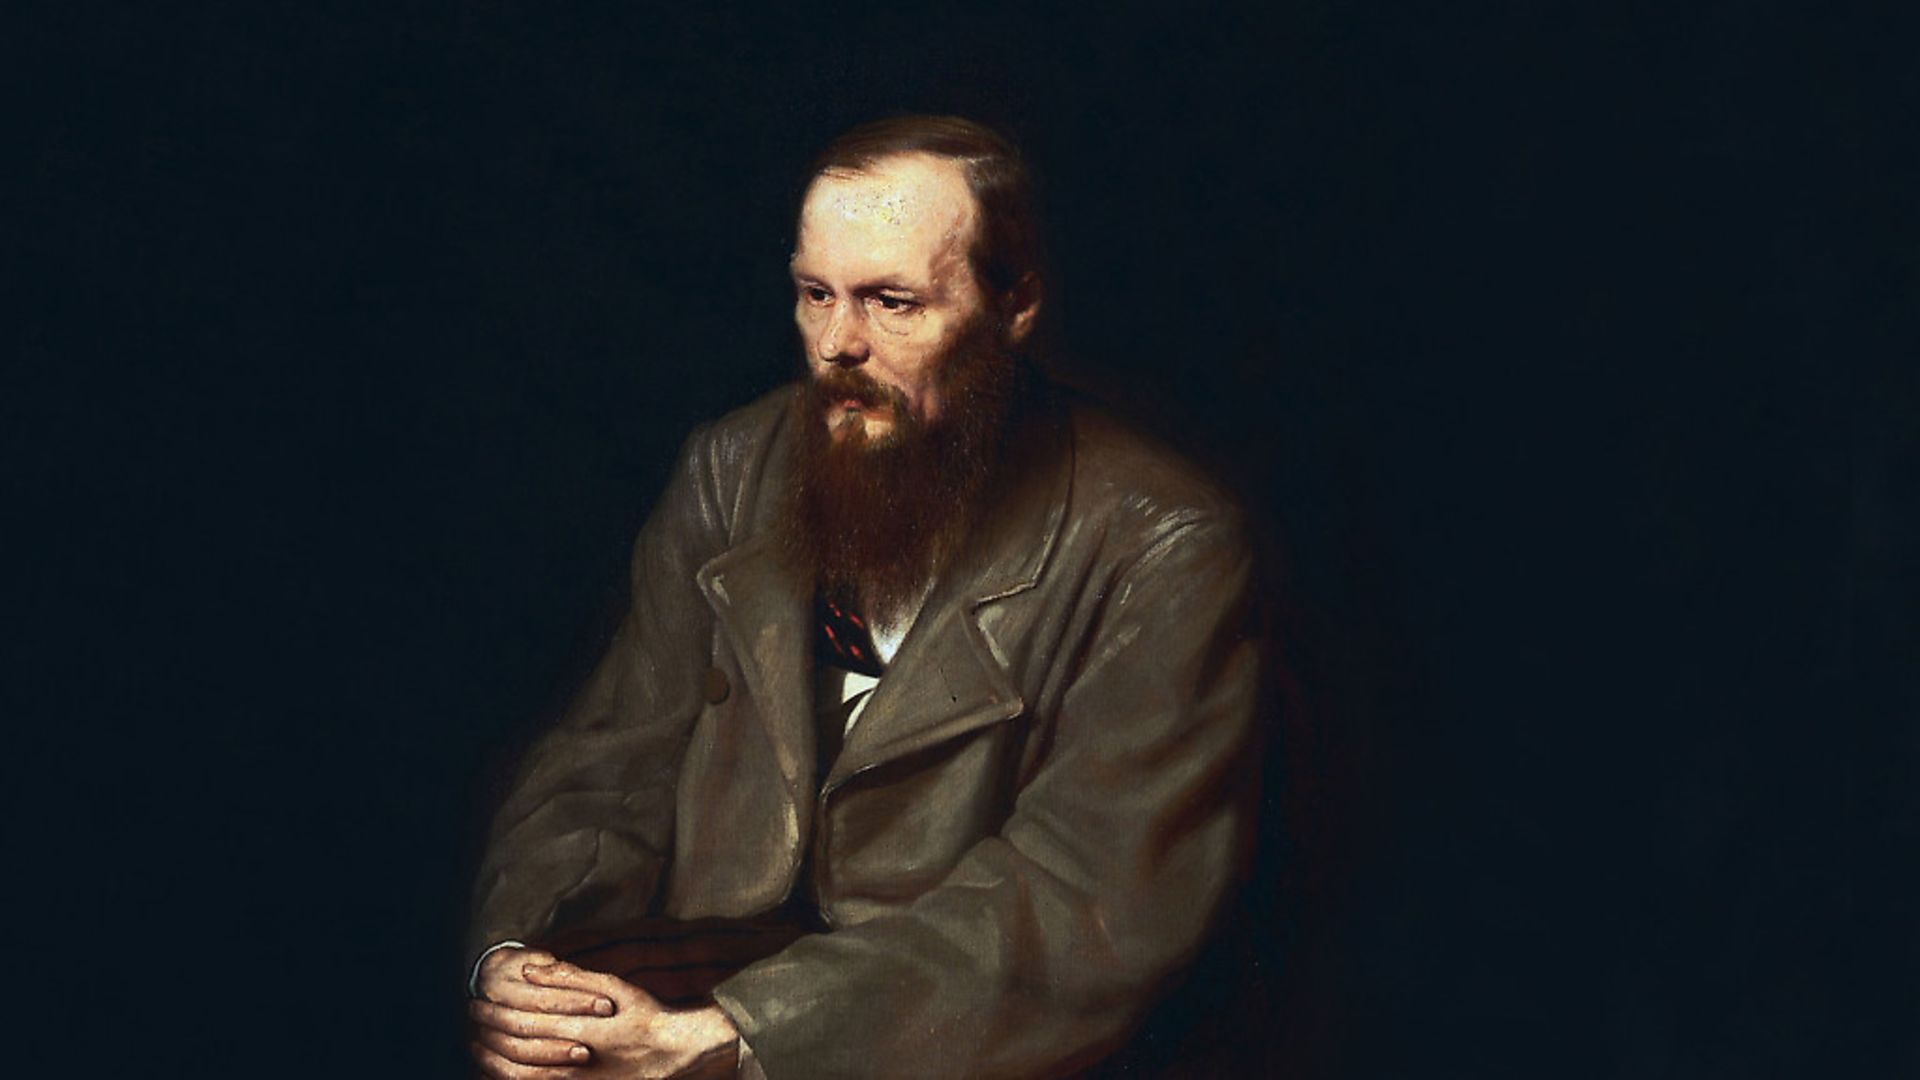 A portrait of novelist and essayist, Fyodor Dostoevsky from 1872. Picture: Universal History Archive/Getty Images - Credit: Getty Images